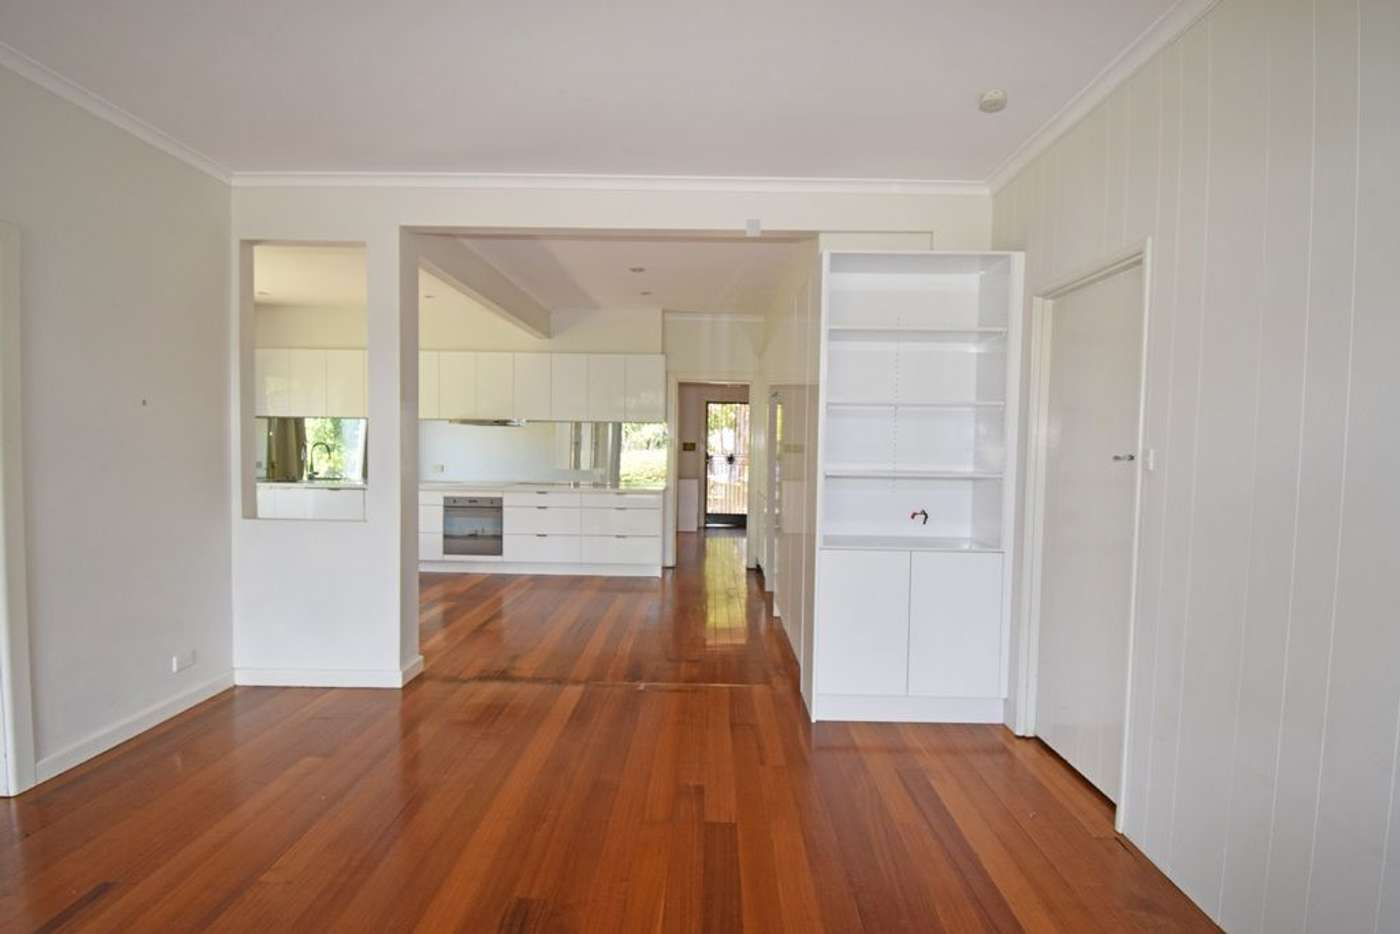 Sixth view of Homely house listing, 28 Mortimore Street, Bentleigh VIC 3204